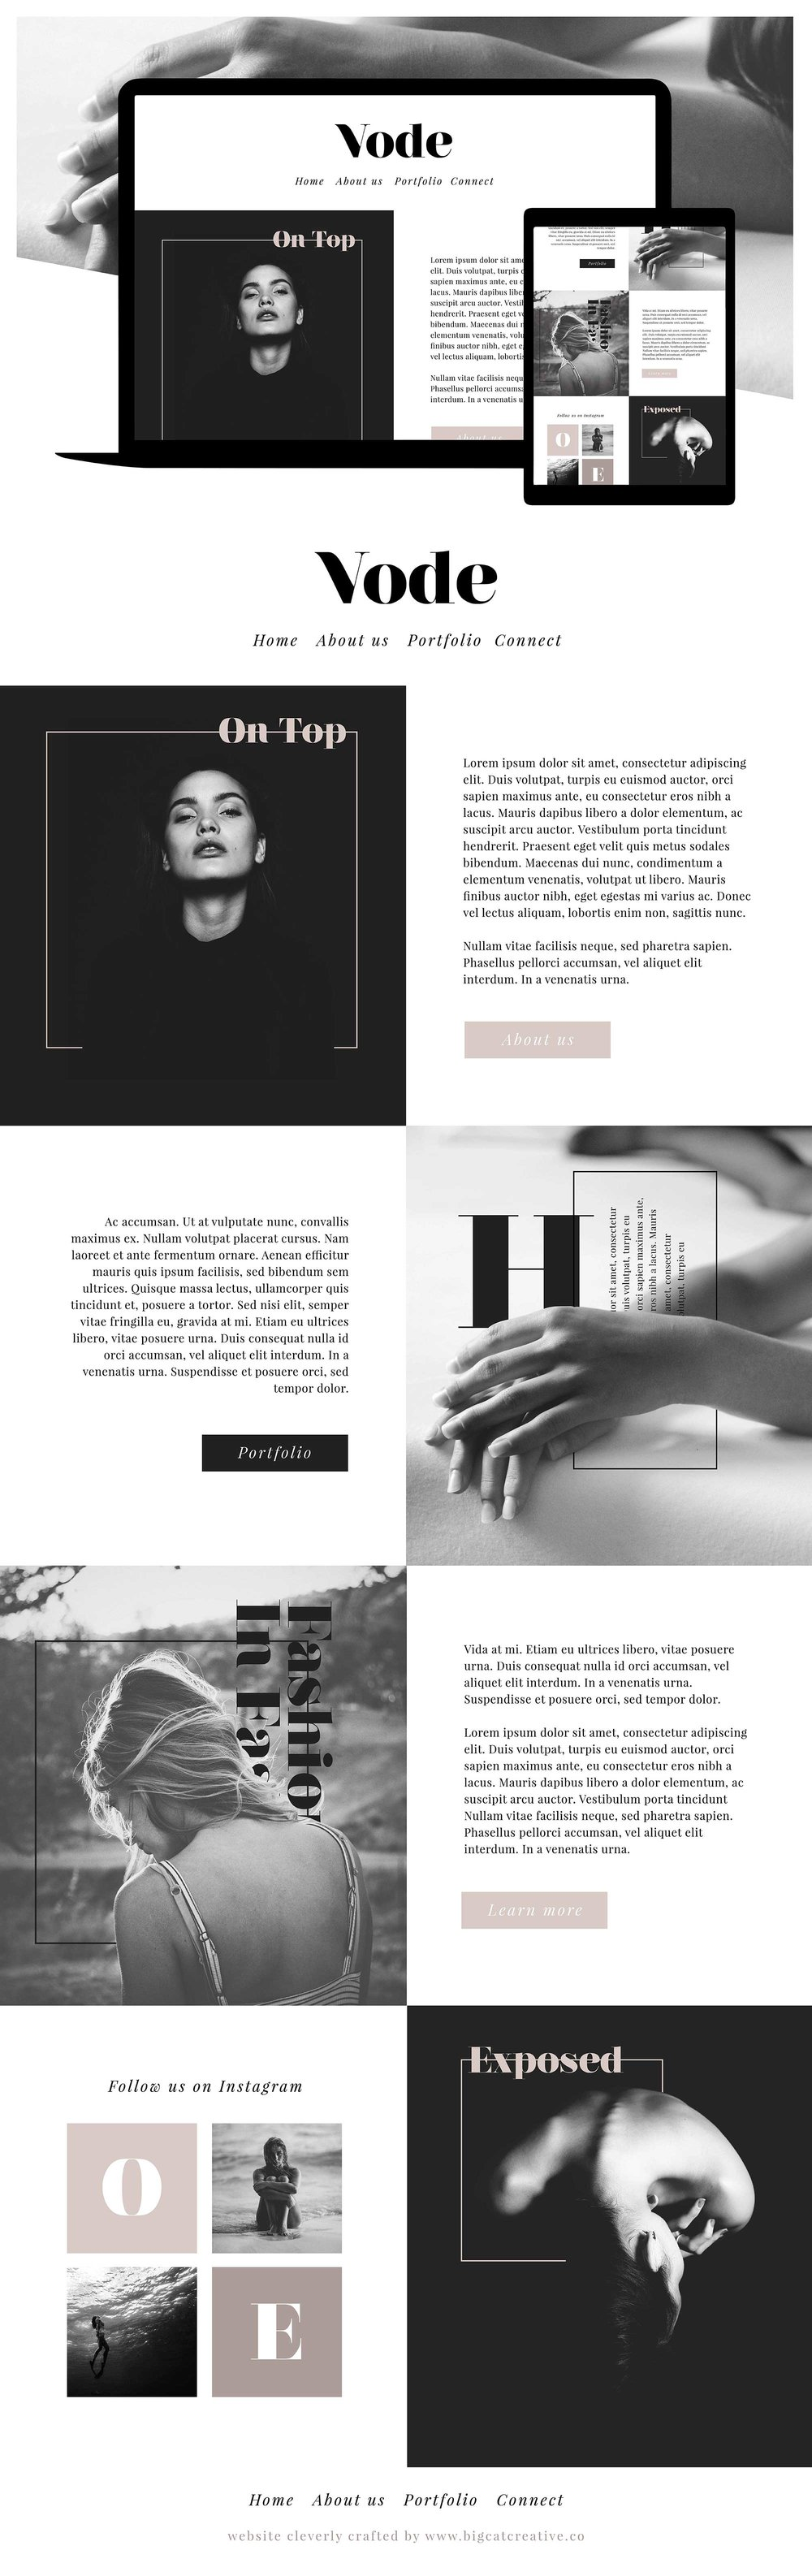 Squarespacewebsitedesign-Vode.jpg